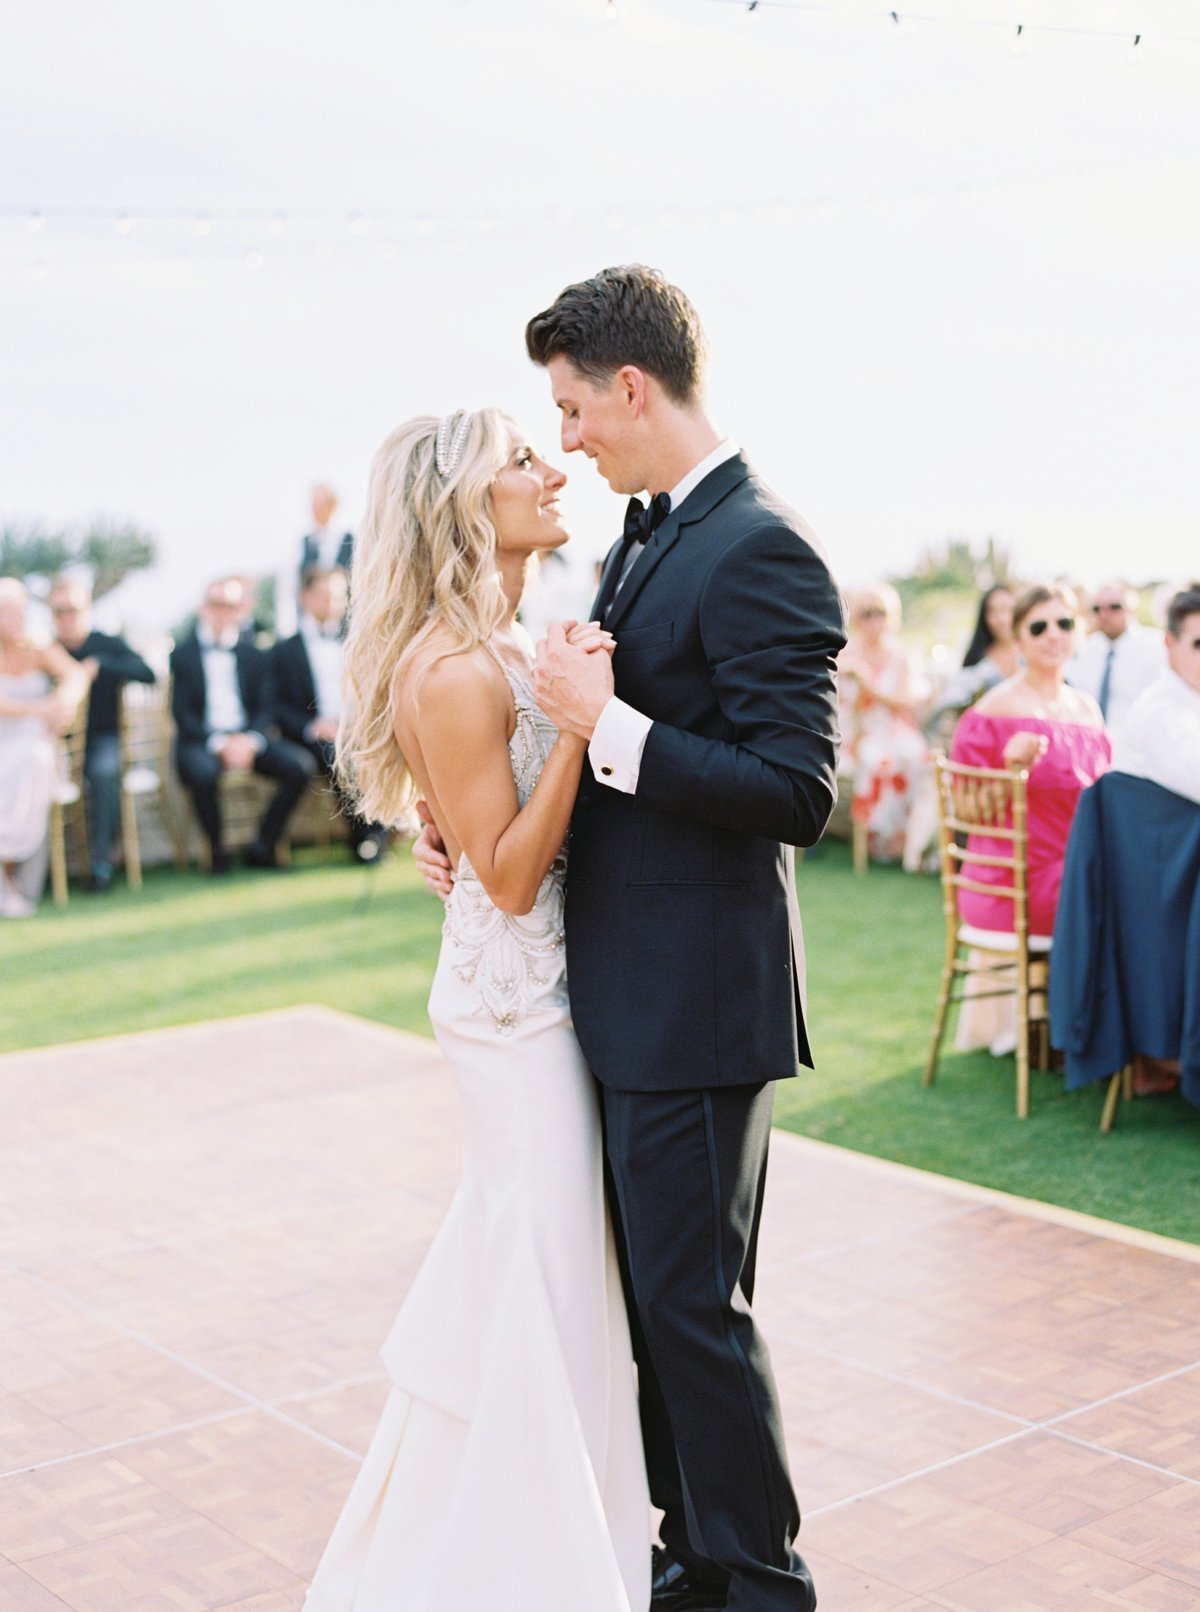 nicoleclareyphotography_evan+jeff_laguna beach_wedding_0046